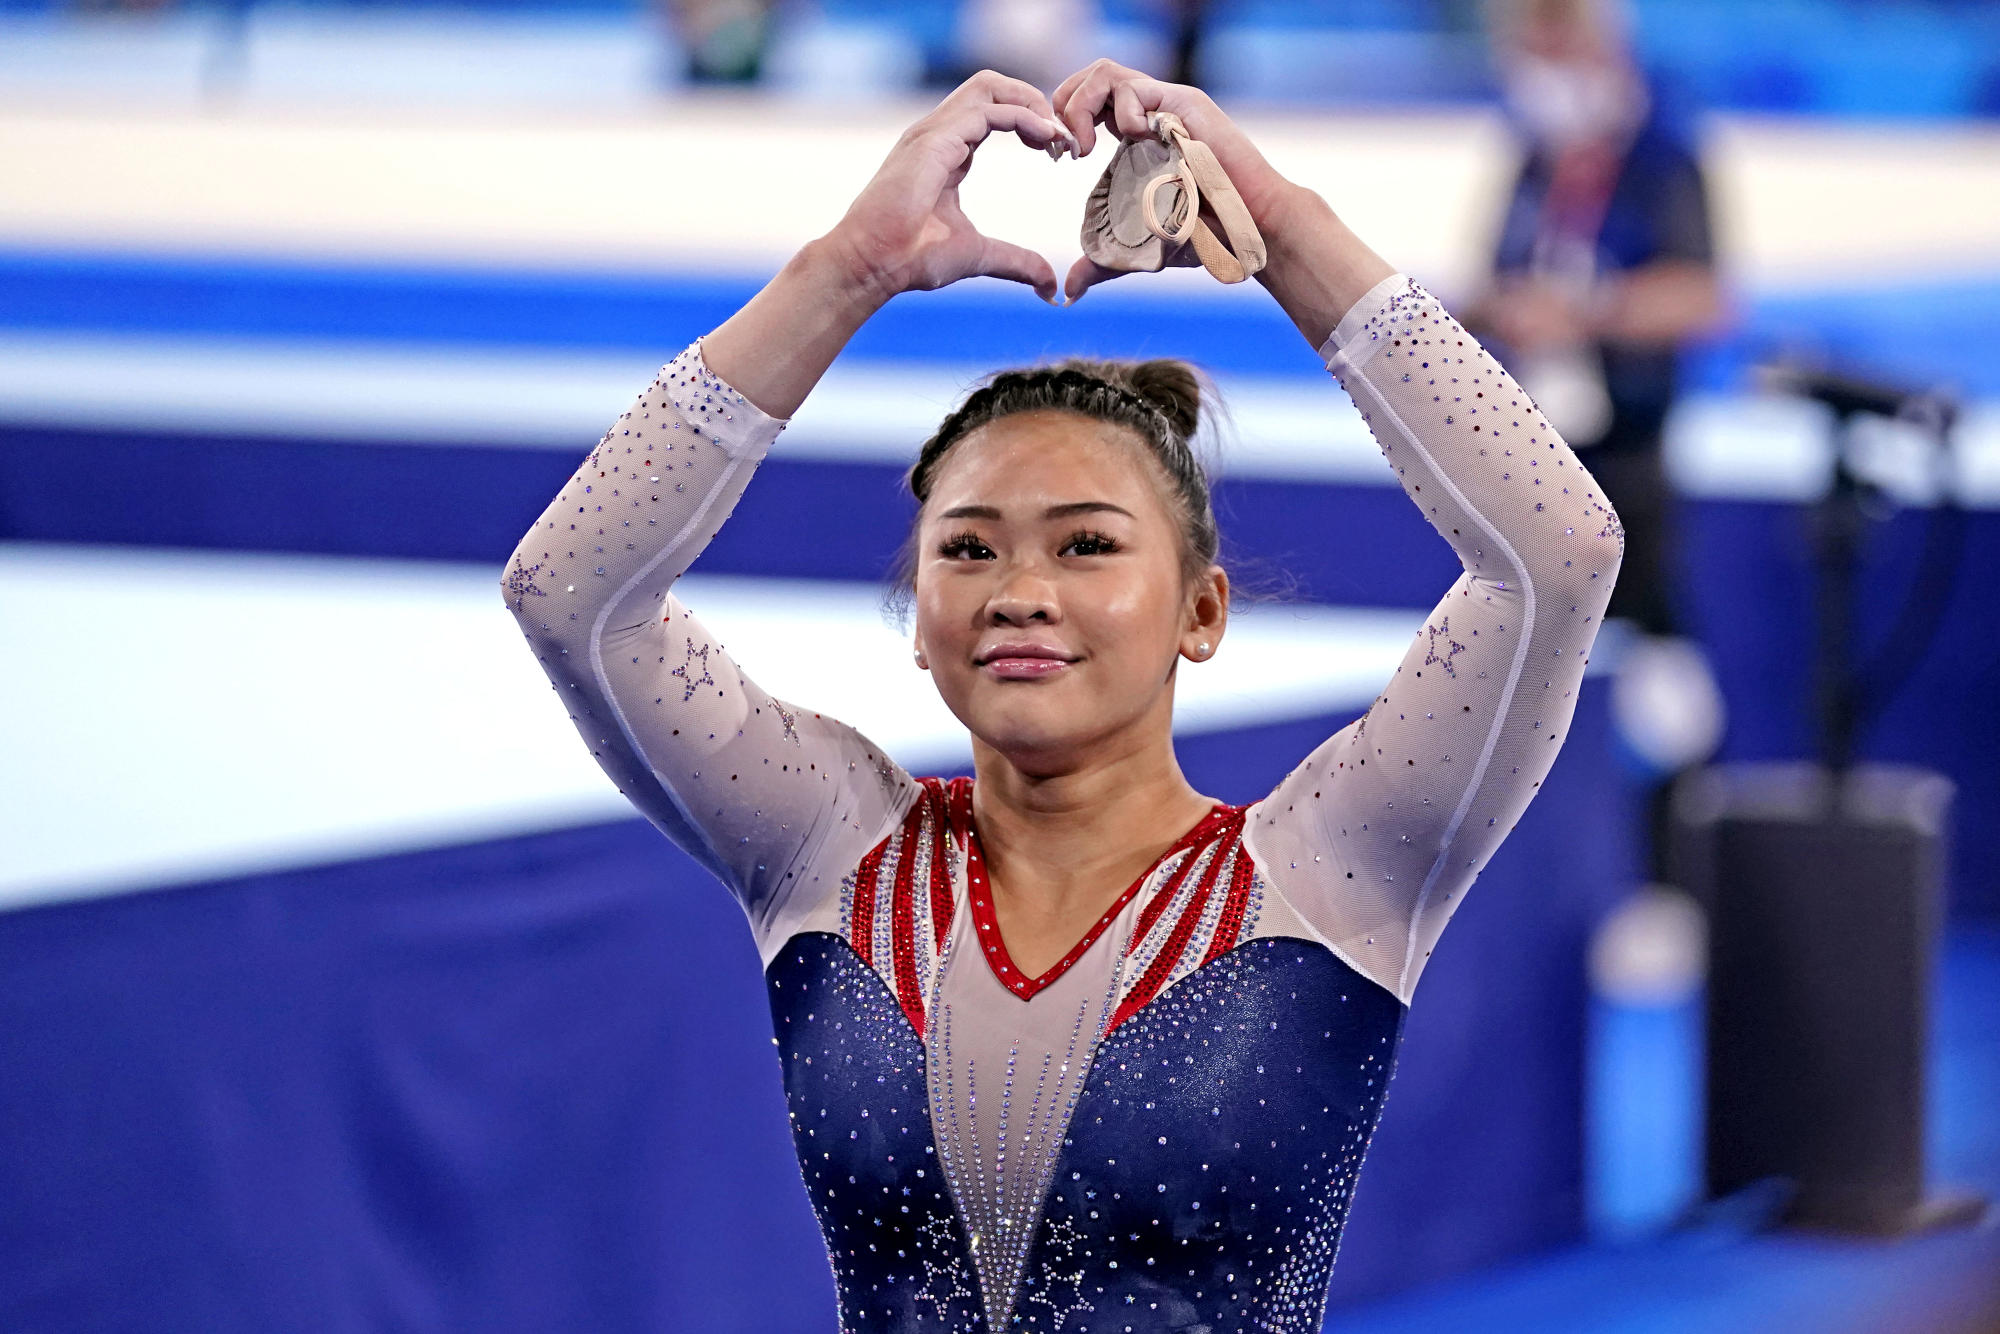 'Tears everywhere': Watch Sunisa Lee's family celebrate historic all-around Olympic gold medal